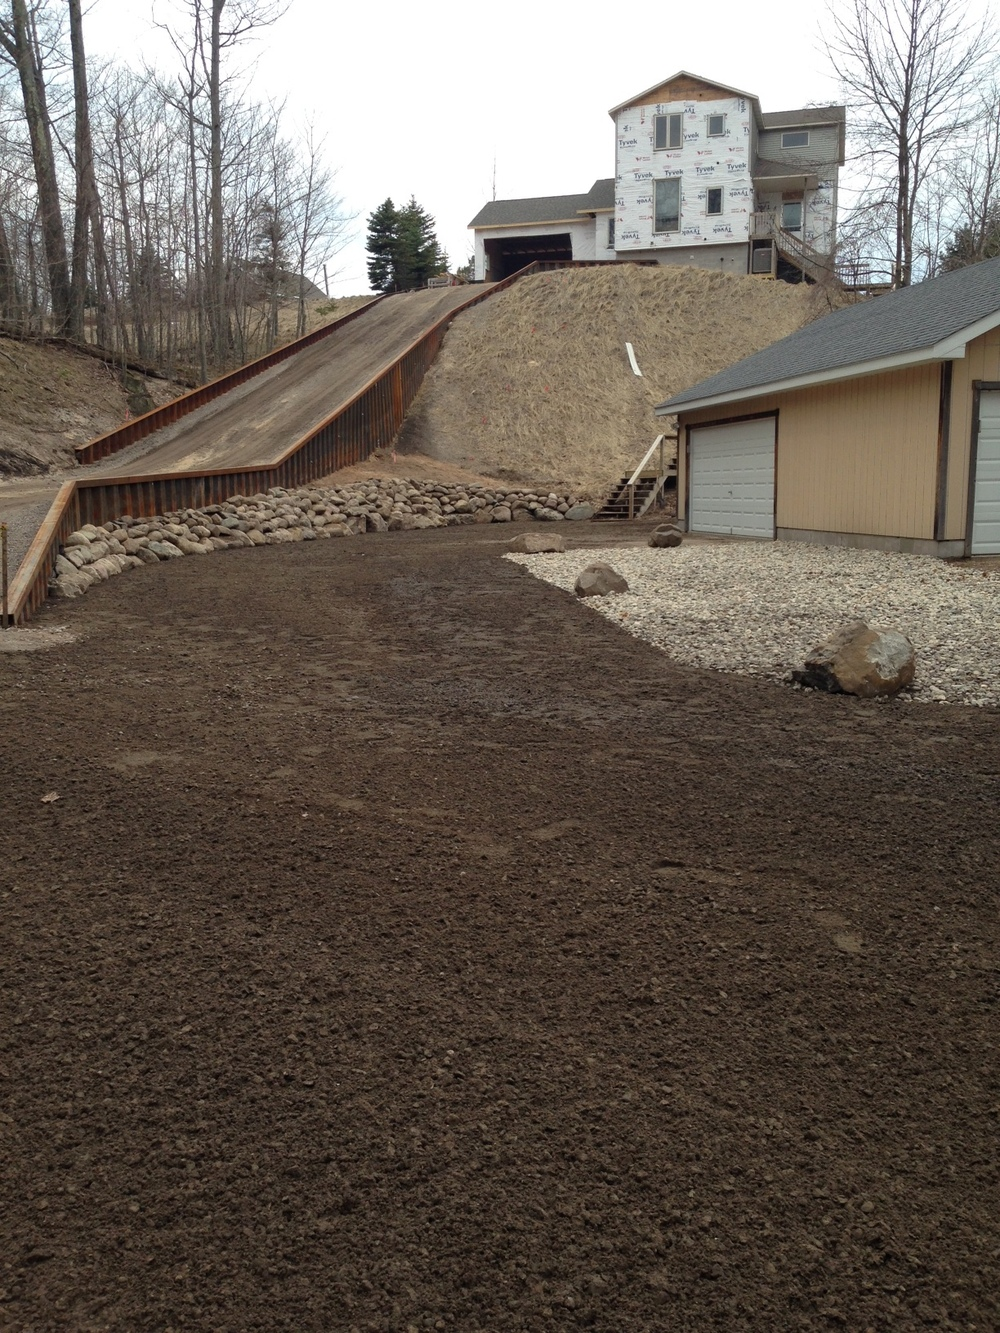 Steel Retaining Wall/New Driveway/Bank Stabilization/Rock Placement, photo 2